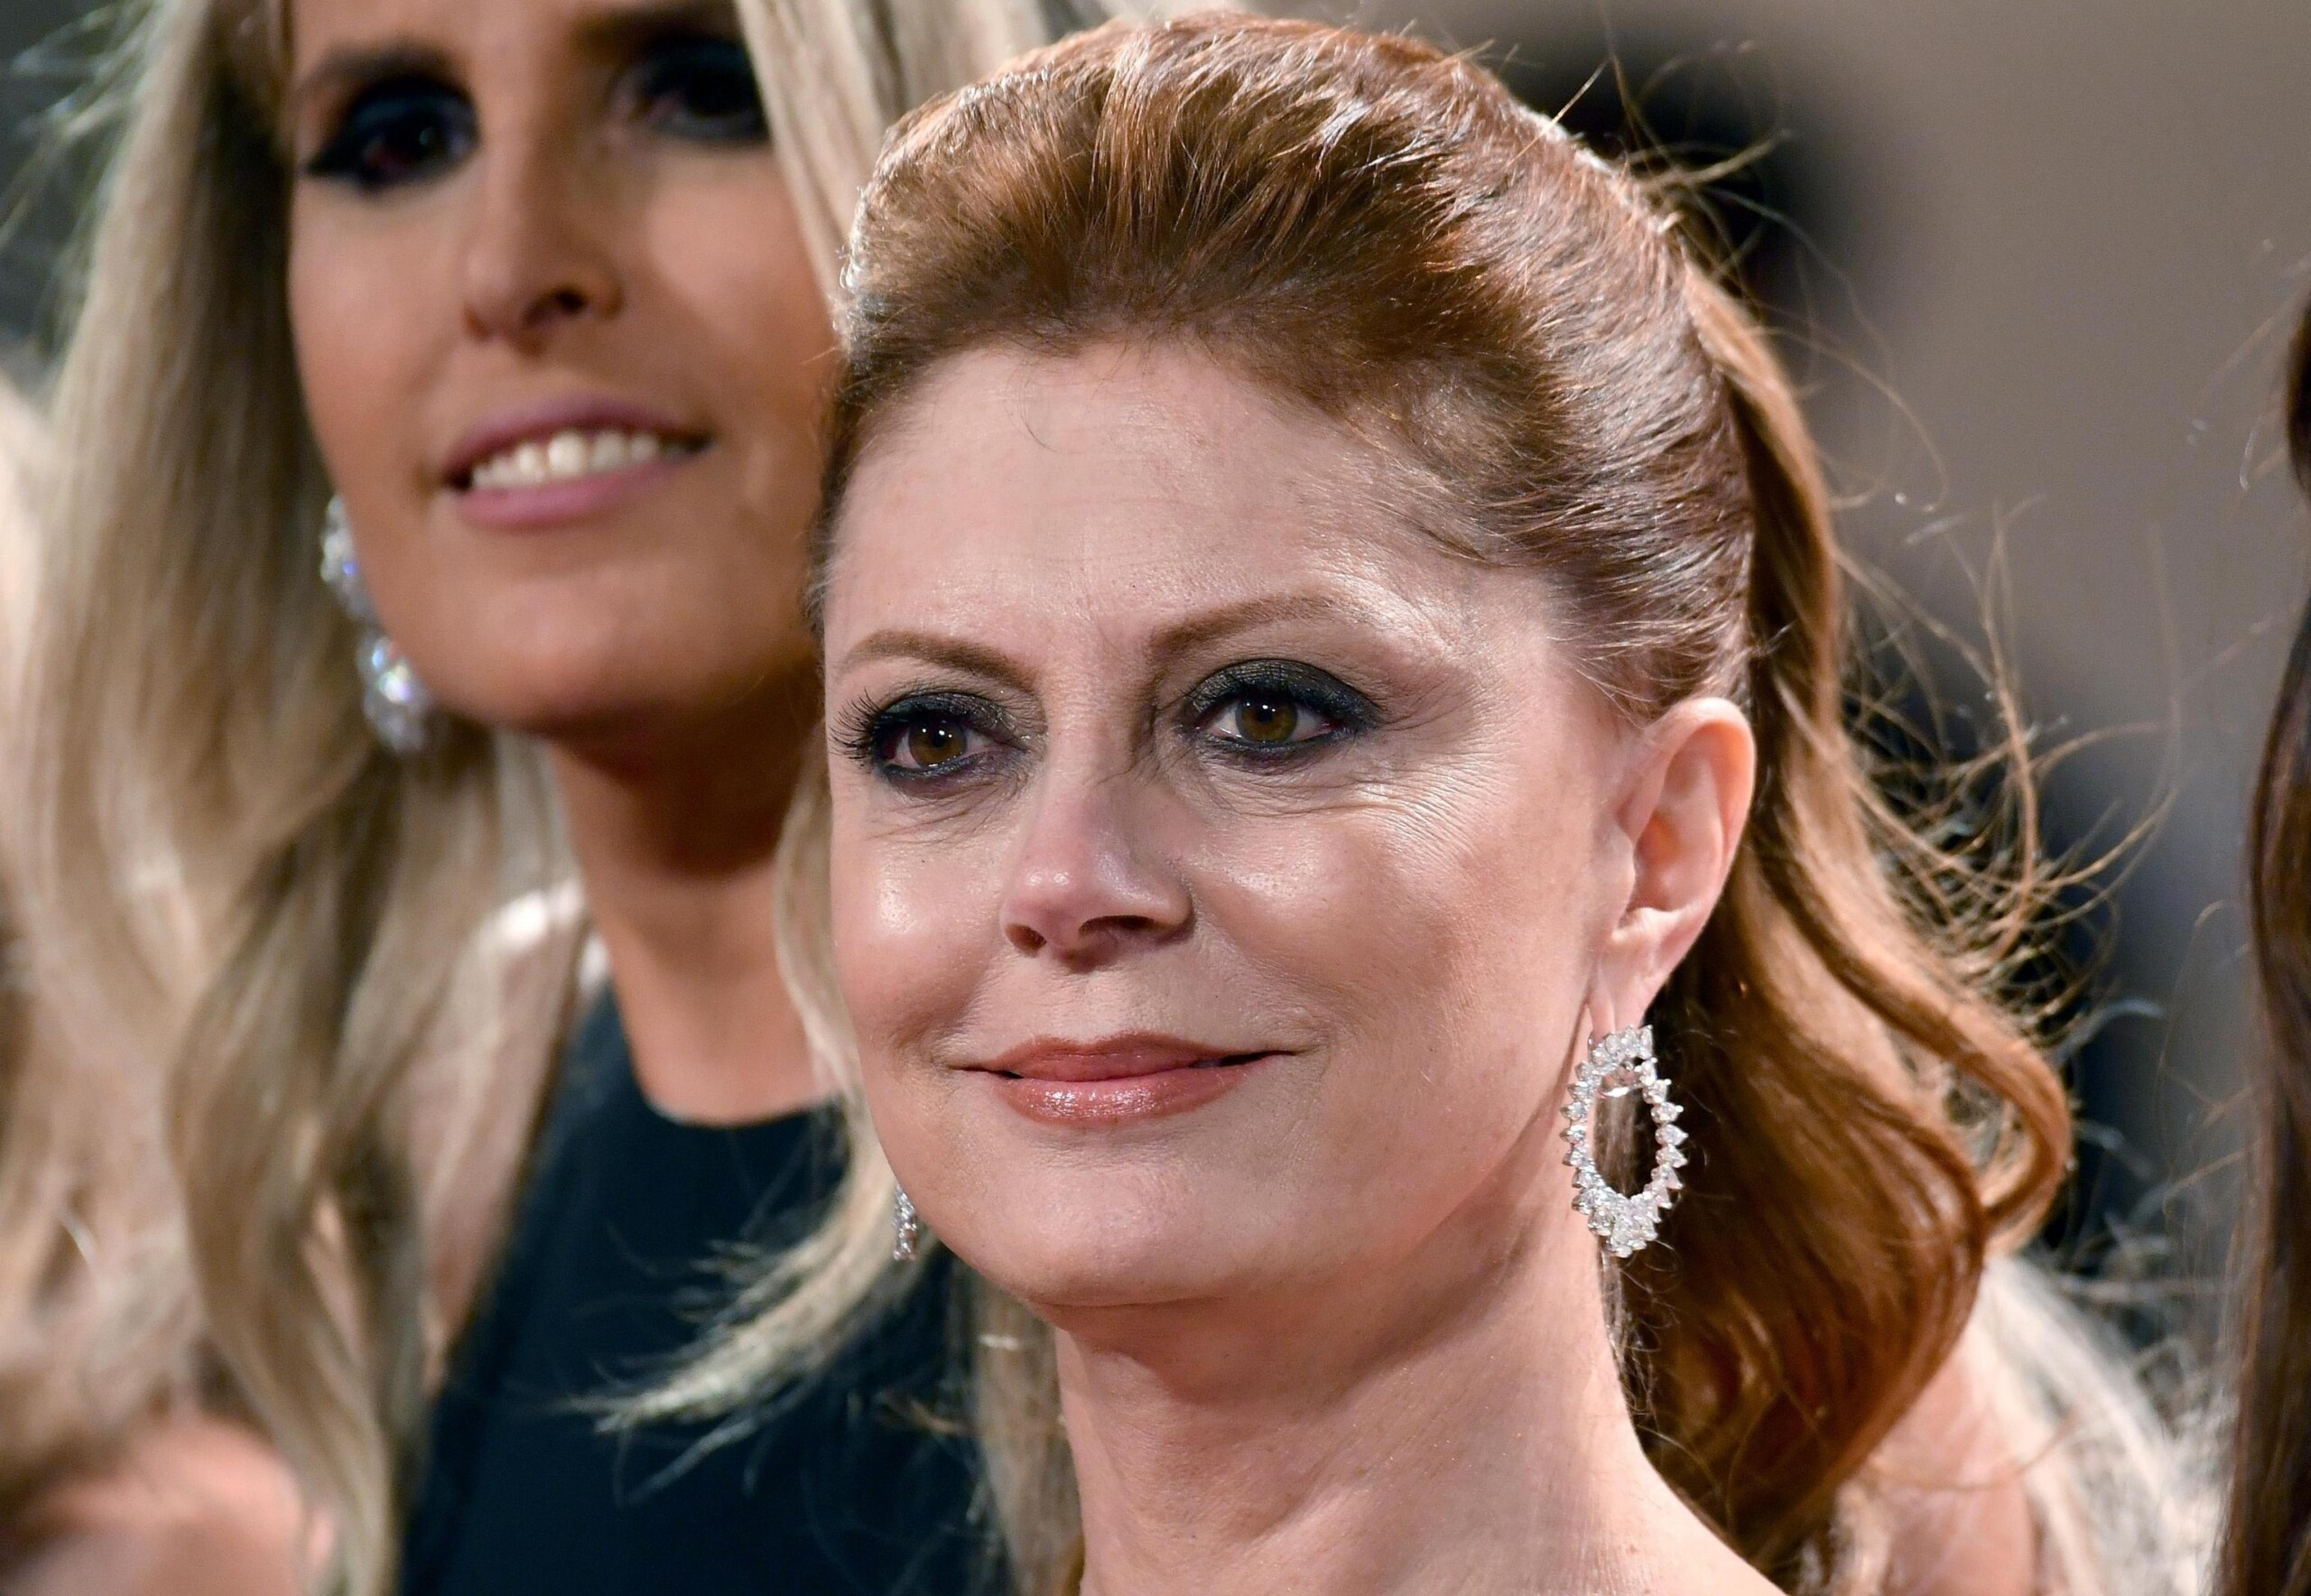 SUSAN SARANDON QUEEN OF THE SEVENTH ART IS 75 YEARS scaled